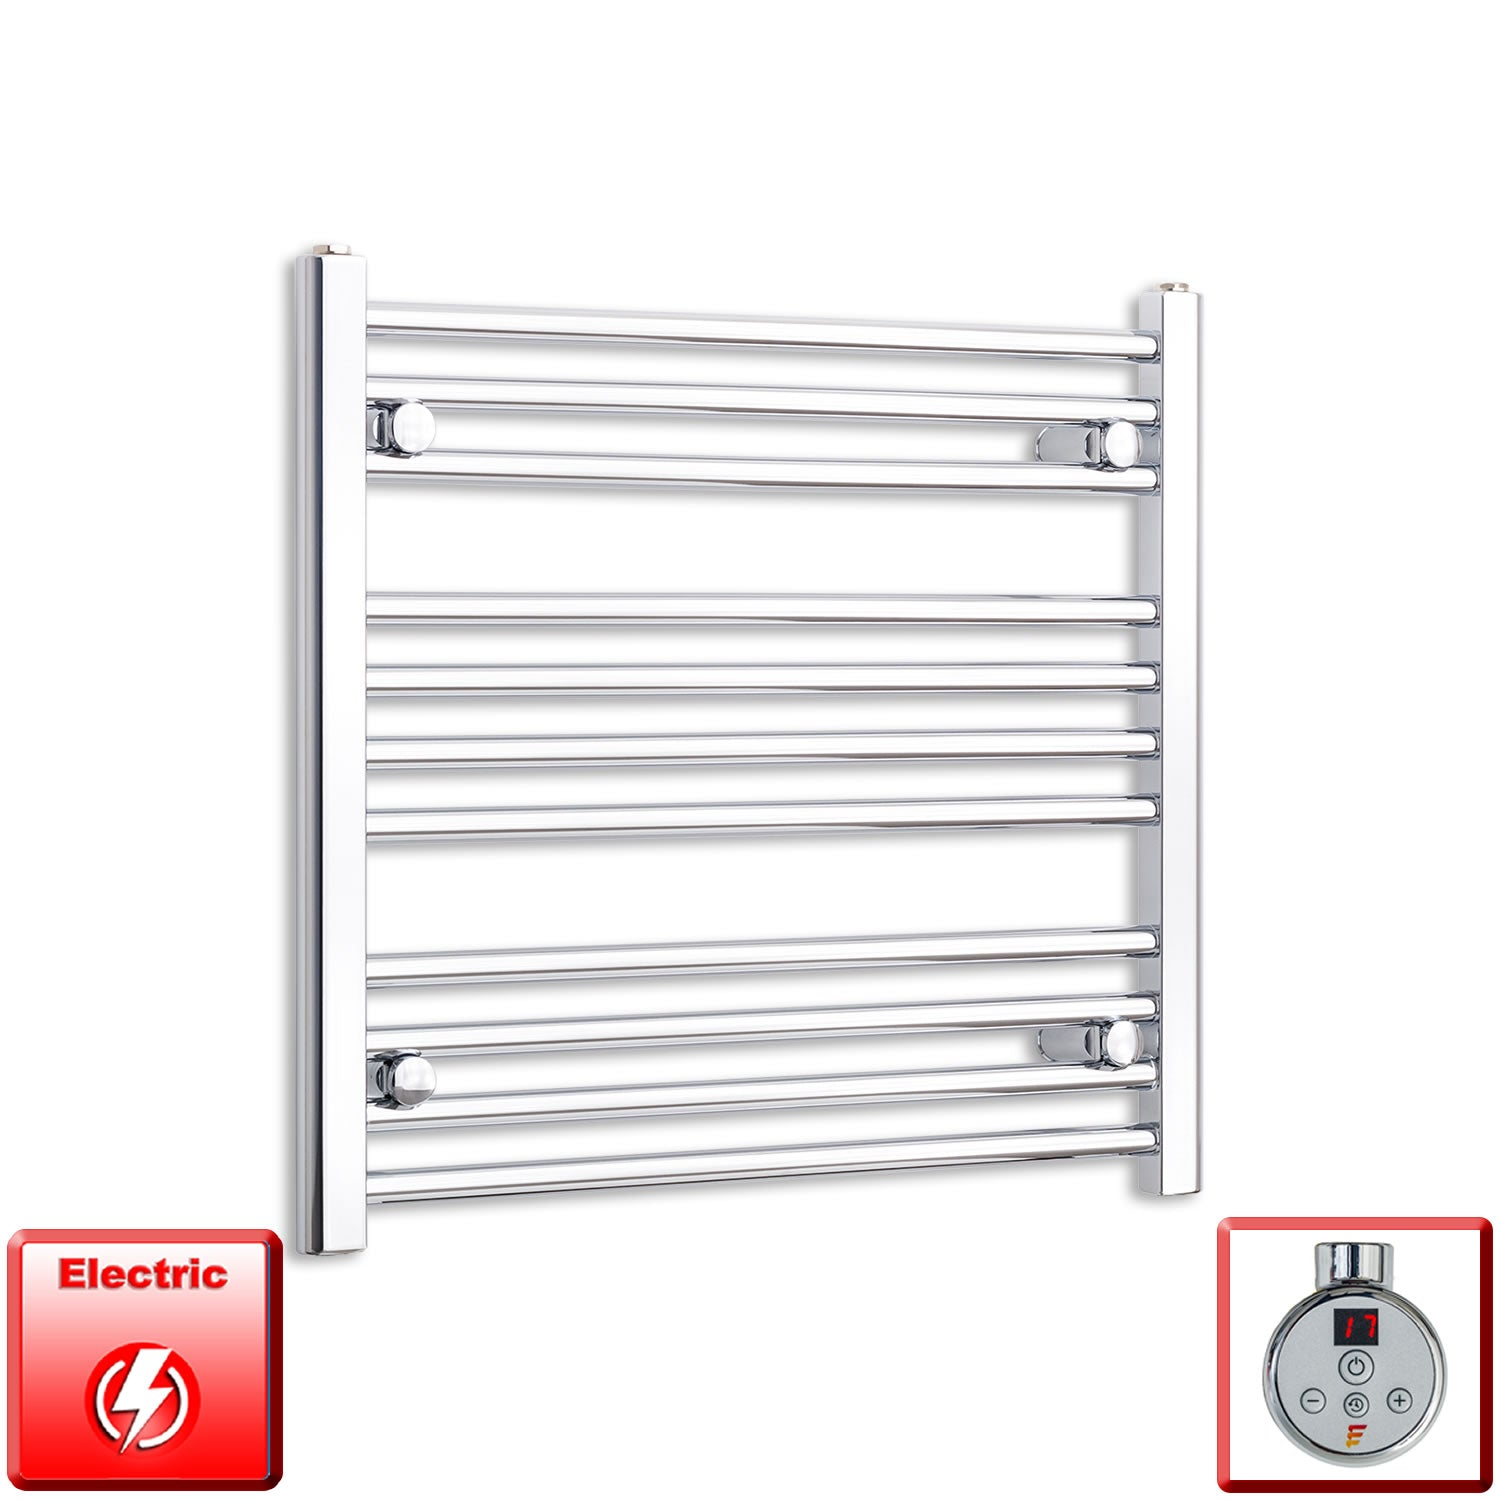 600mm High 600mm Wide Pre-Filled Electric Heated Towel Rail Radiator Straight or Curved Chrome